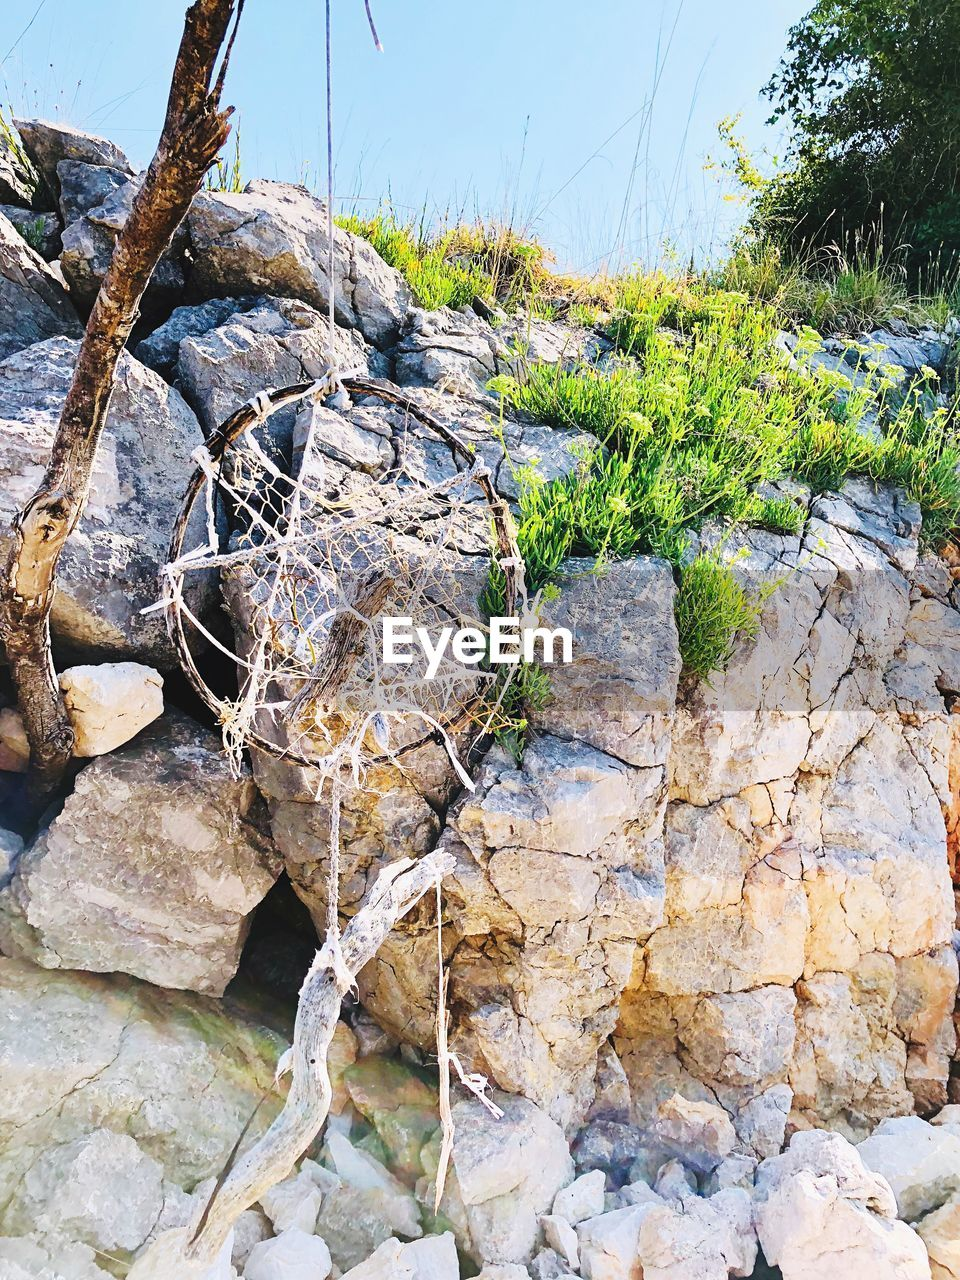 rock, solid, plant, rock - object, nature, day, no people, tree, tranquility, textured, outdoors, stone - object, close-up, growth, land, beauty in nature, focus on foreground, forest, rough, rock formation, stone wall